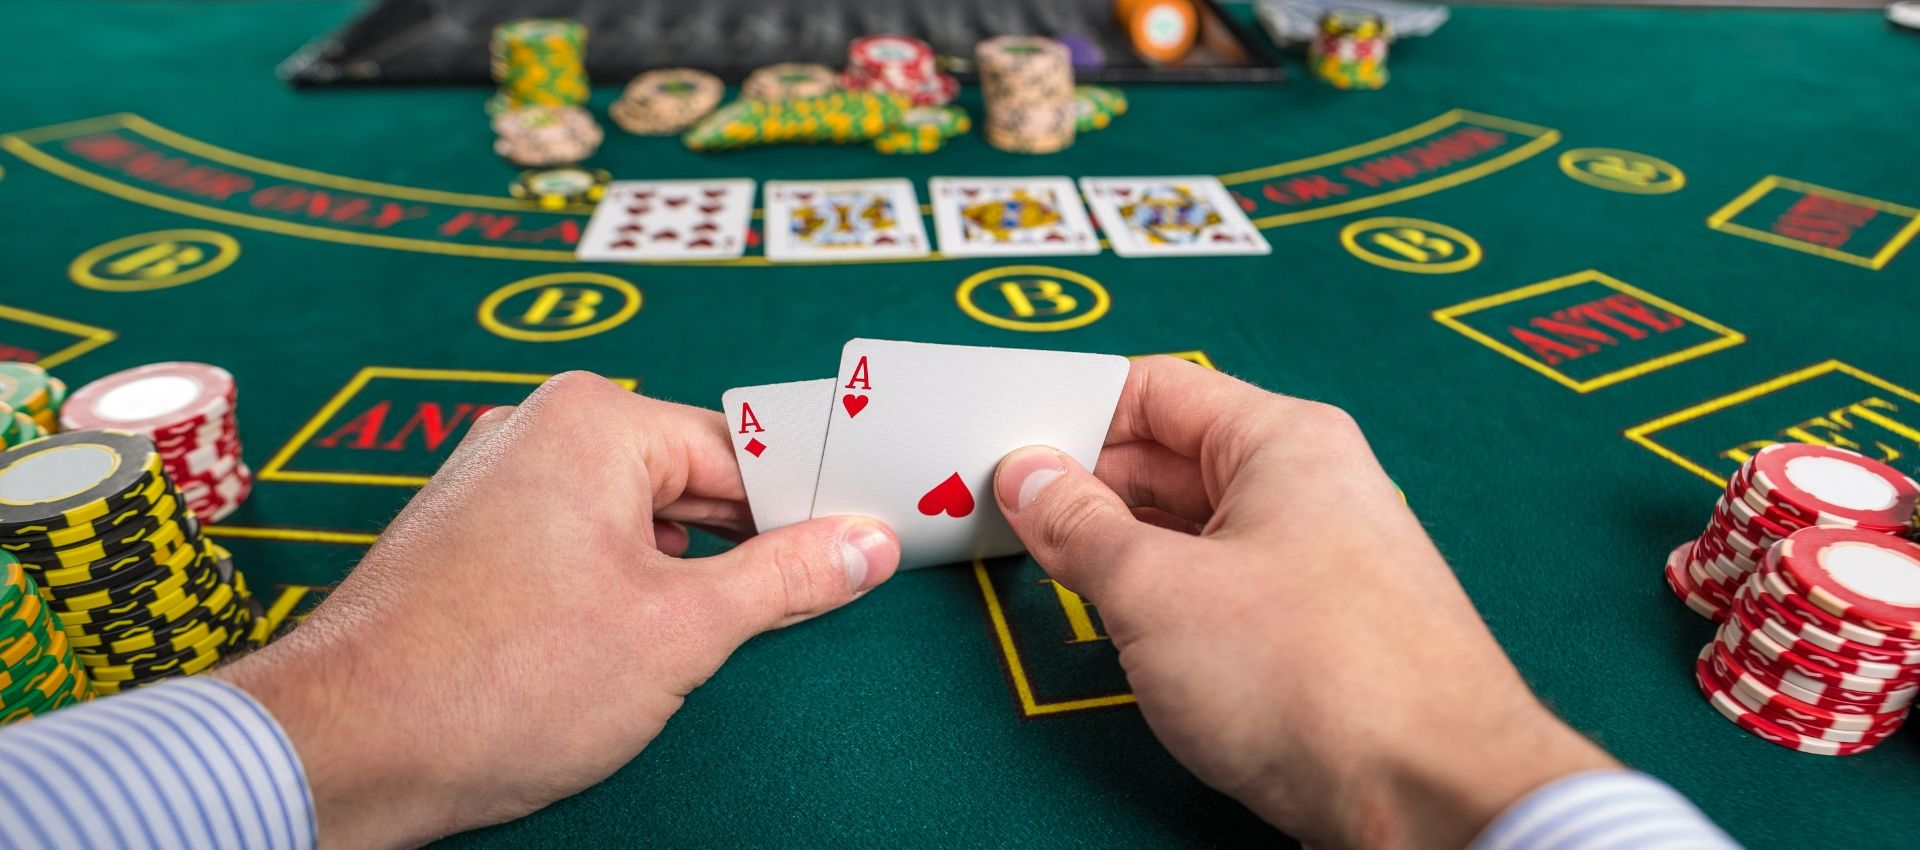 Play Casino Games without Stress in Indonesia